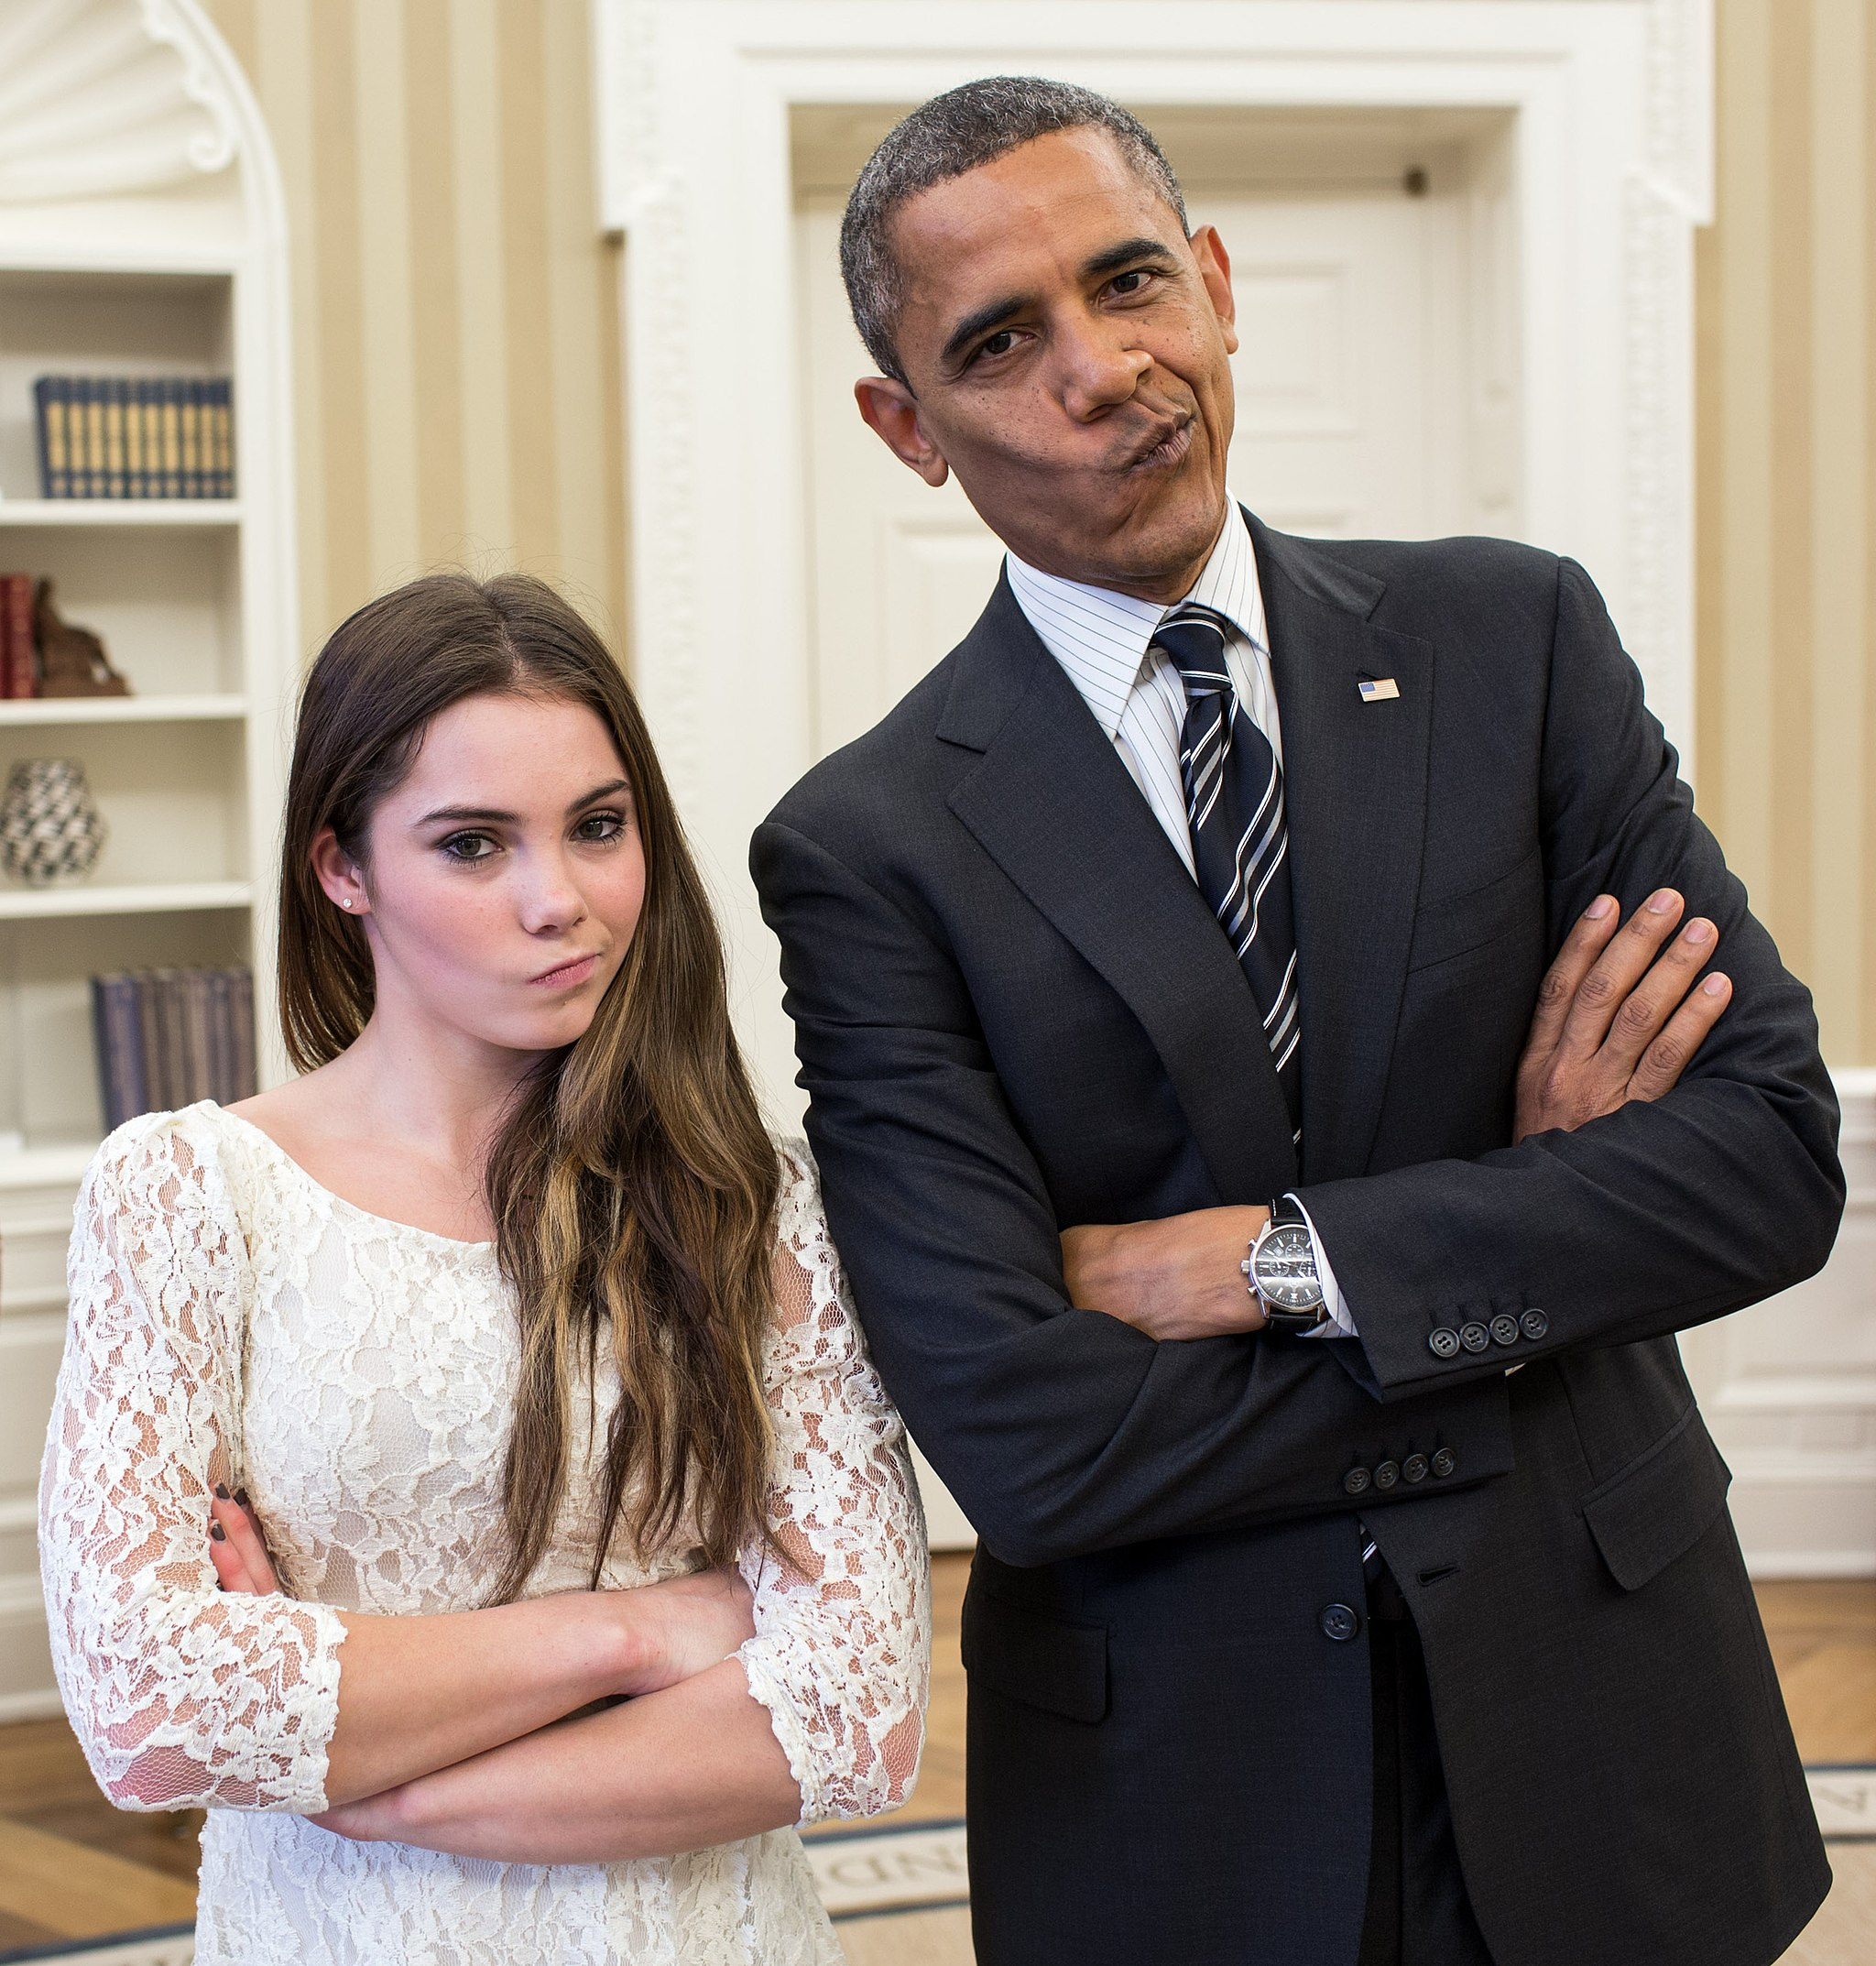 posed photo of intentionally smirking Barack Obama and USA gymnast McKayla Maroney illustrates visual drama and interest